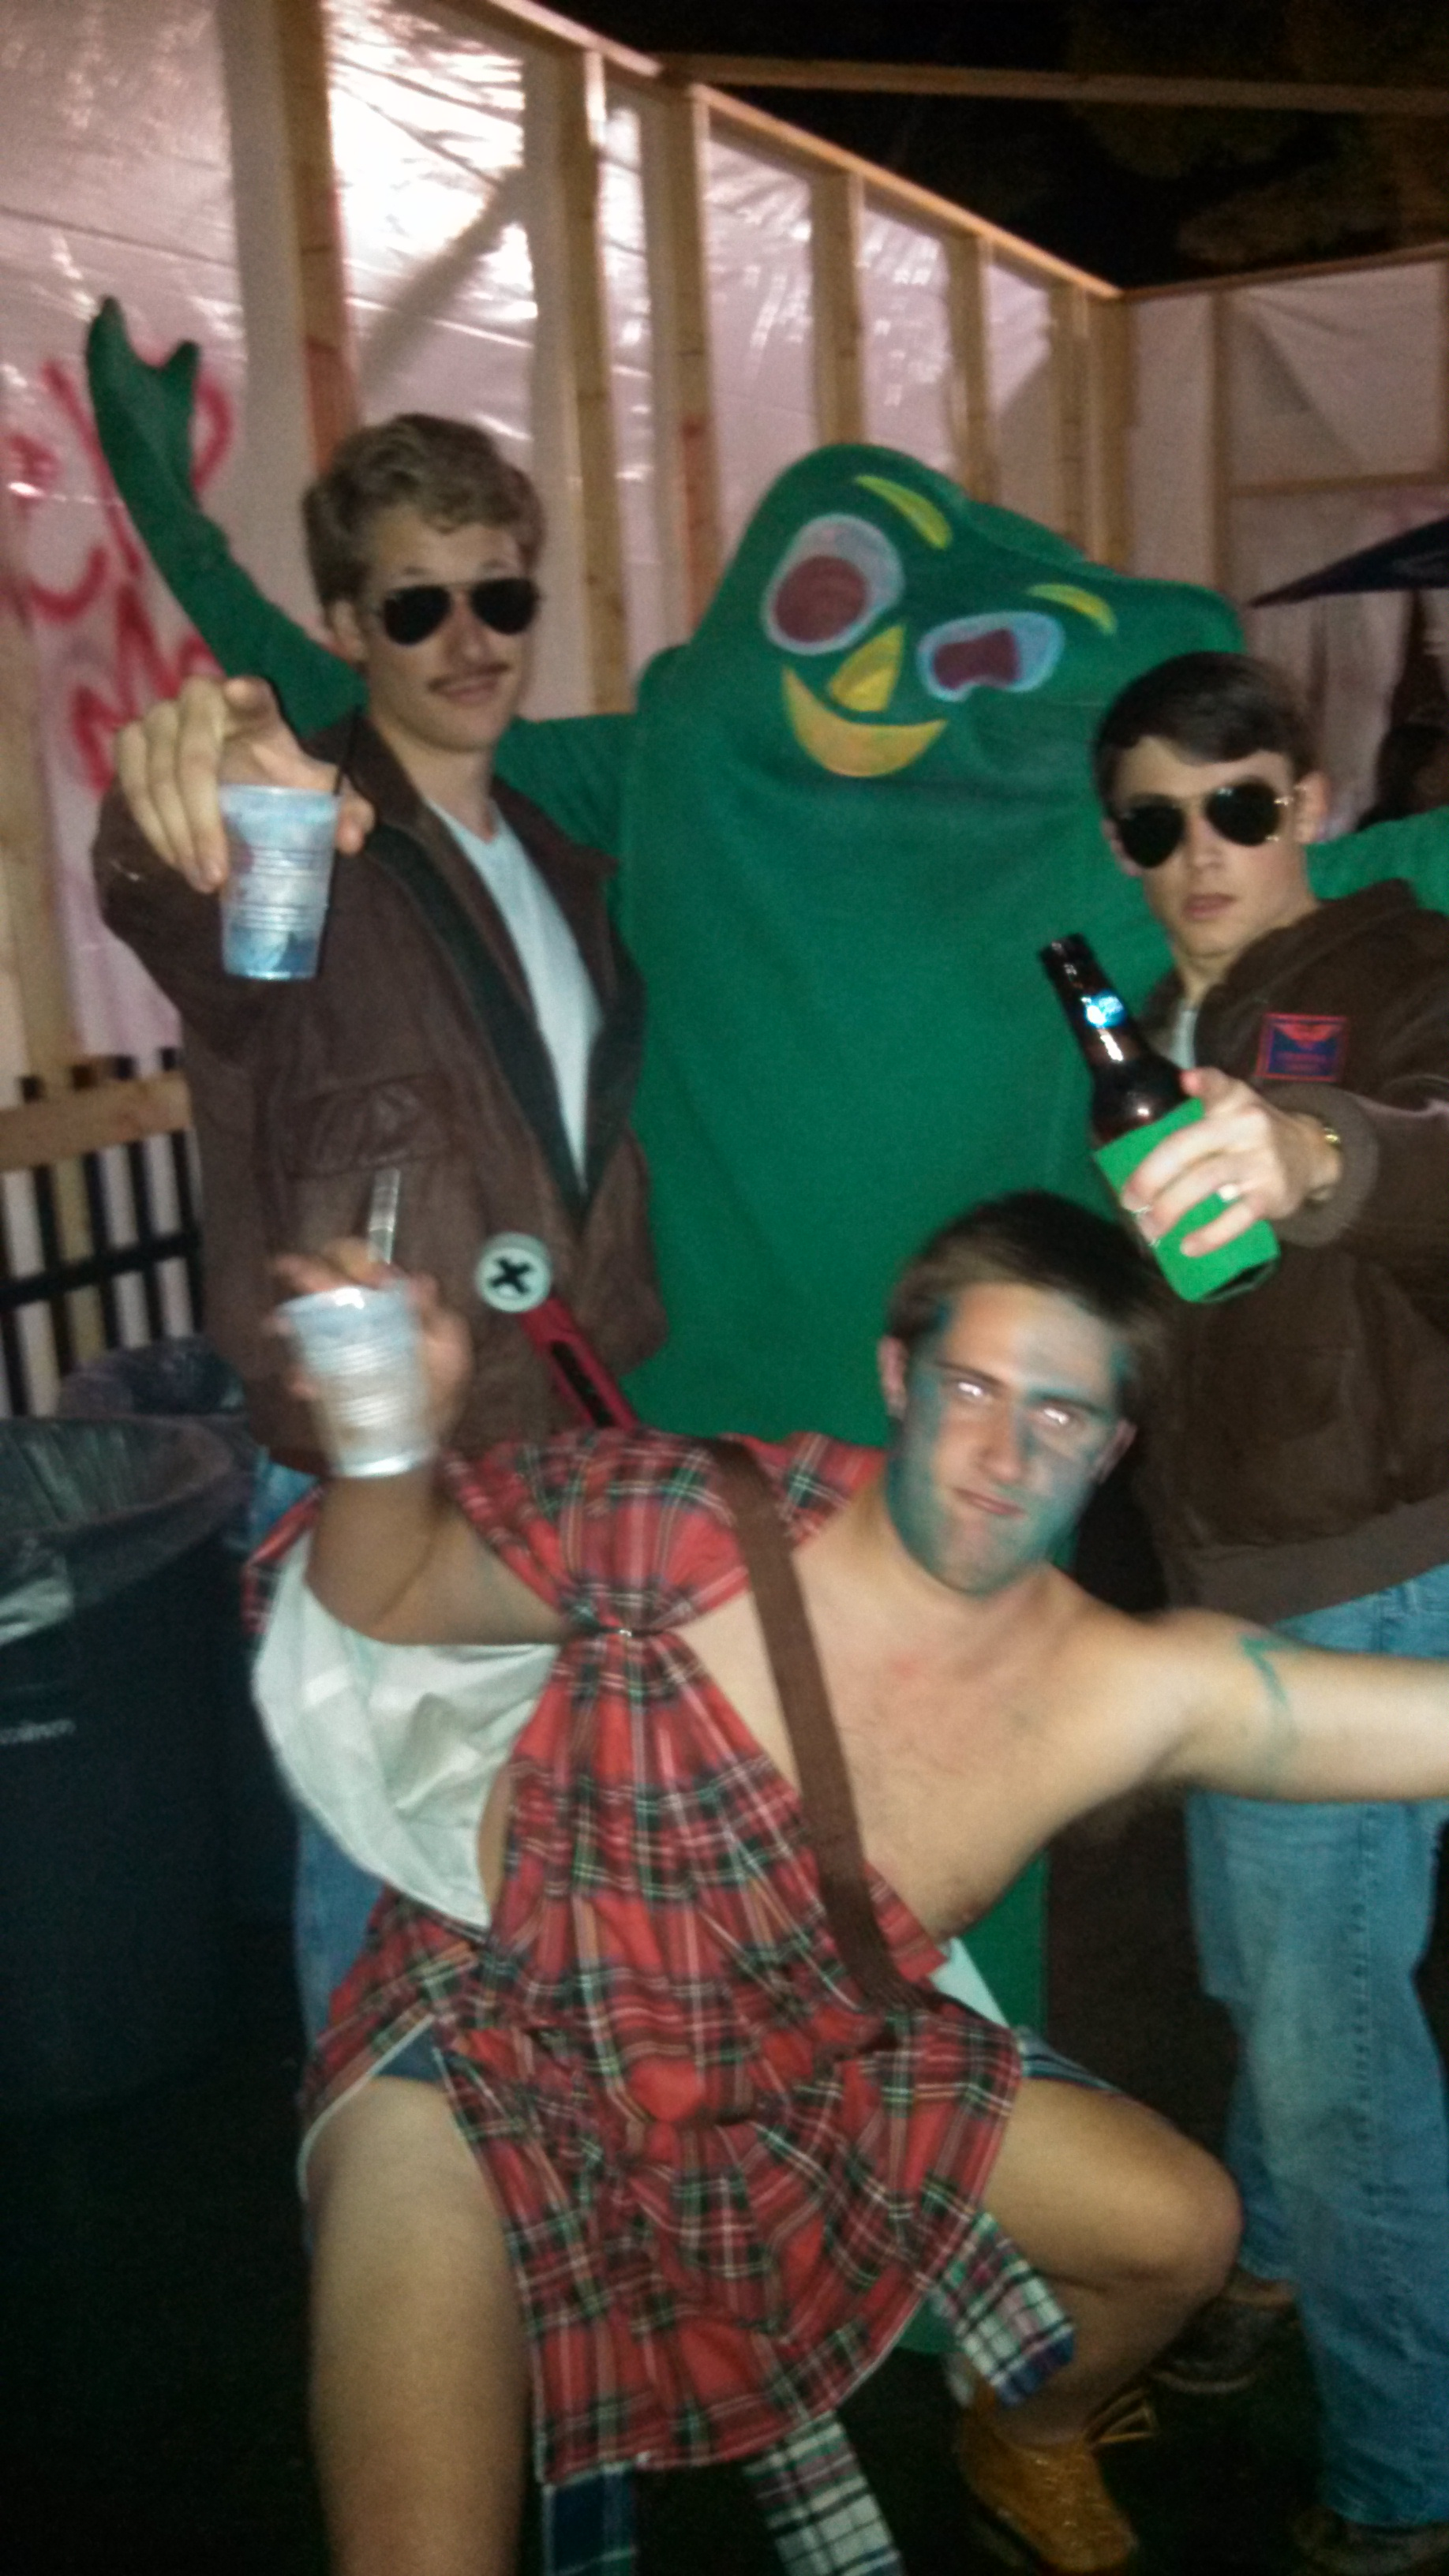 And then we raged with Gumby. TFM.